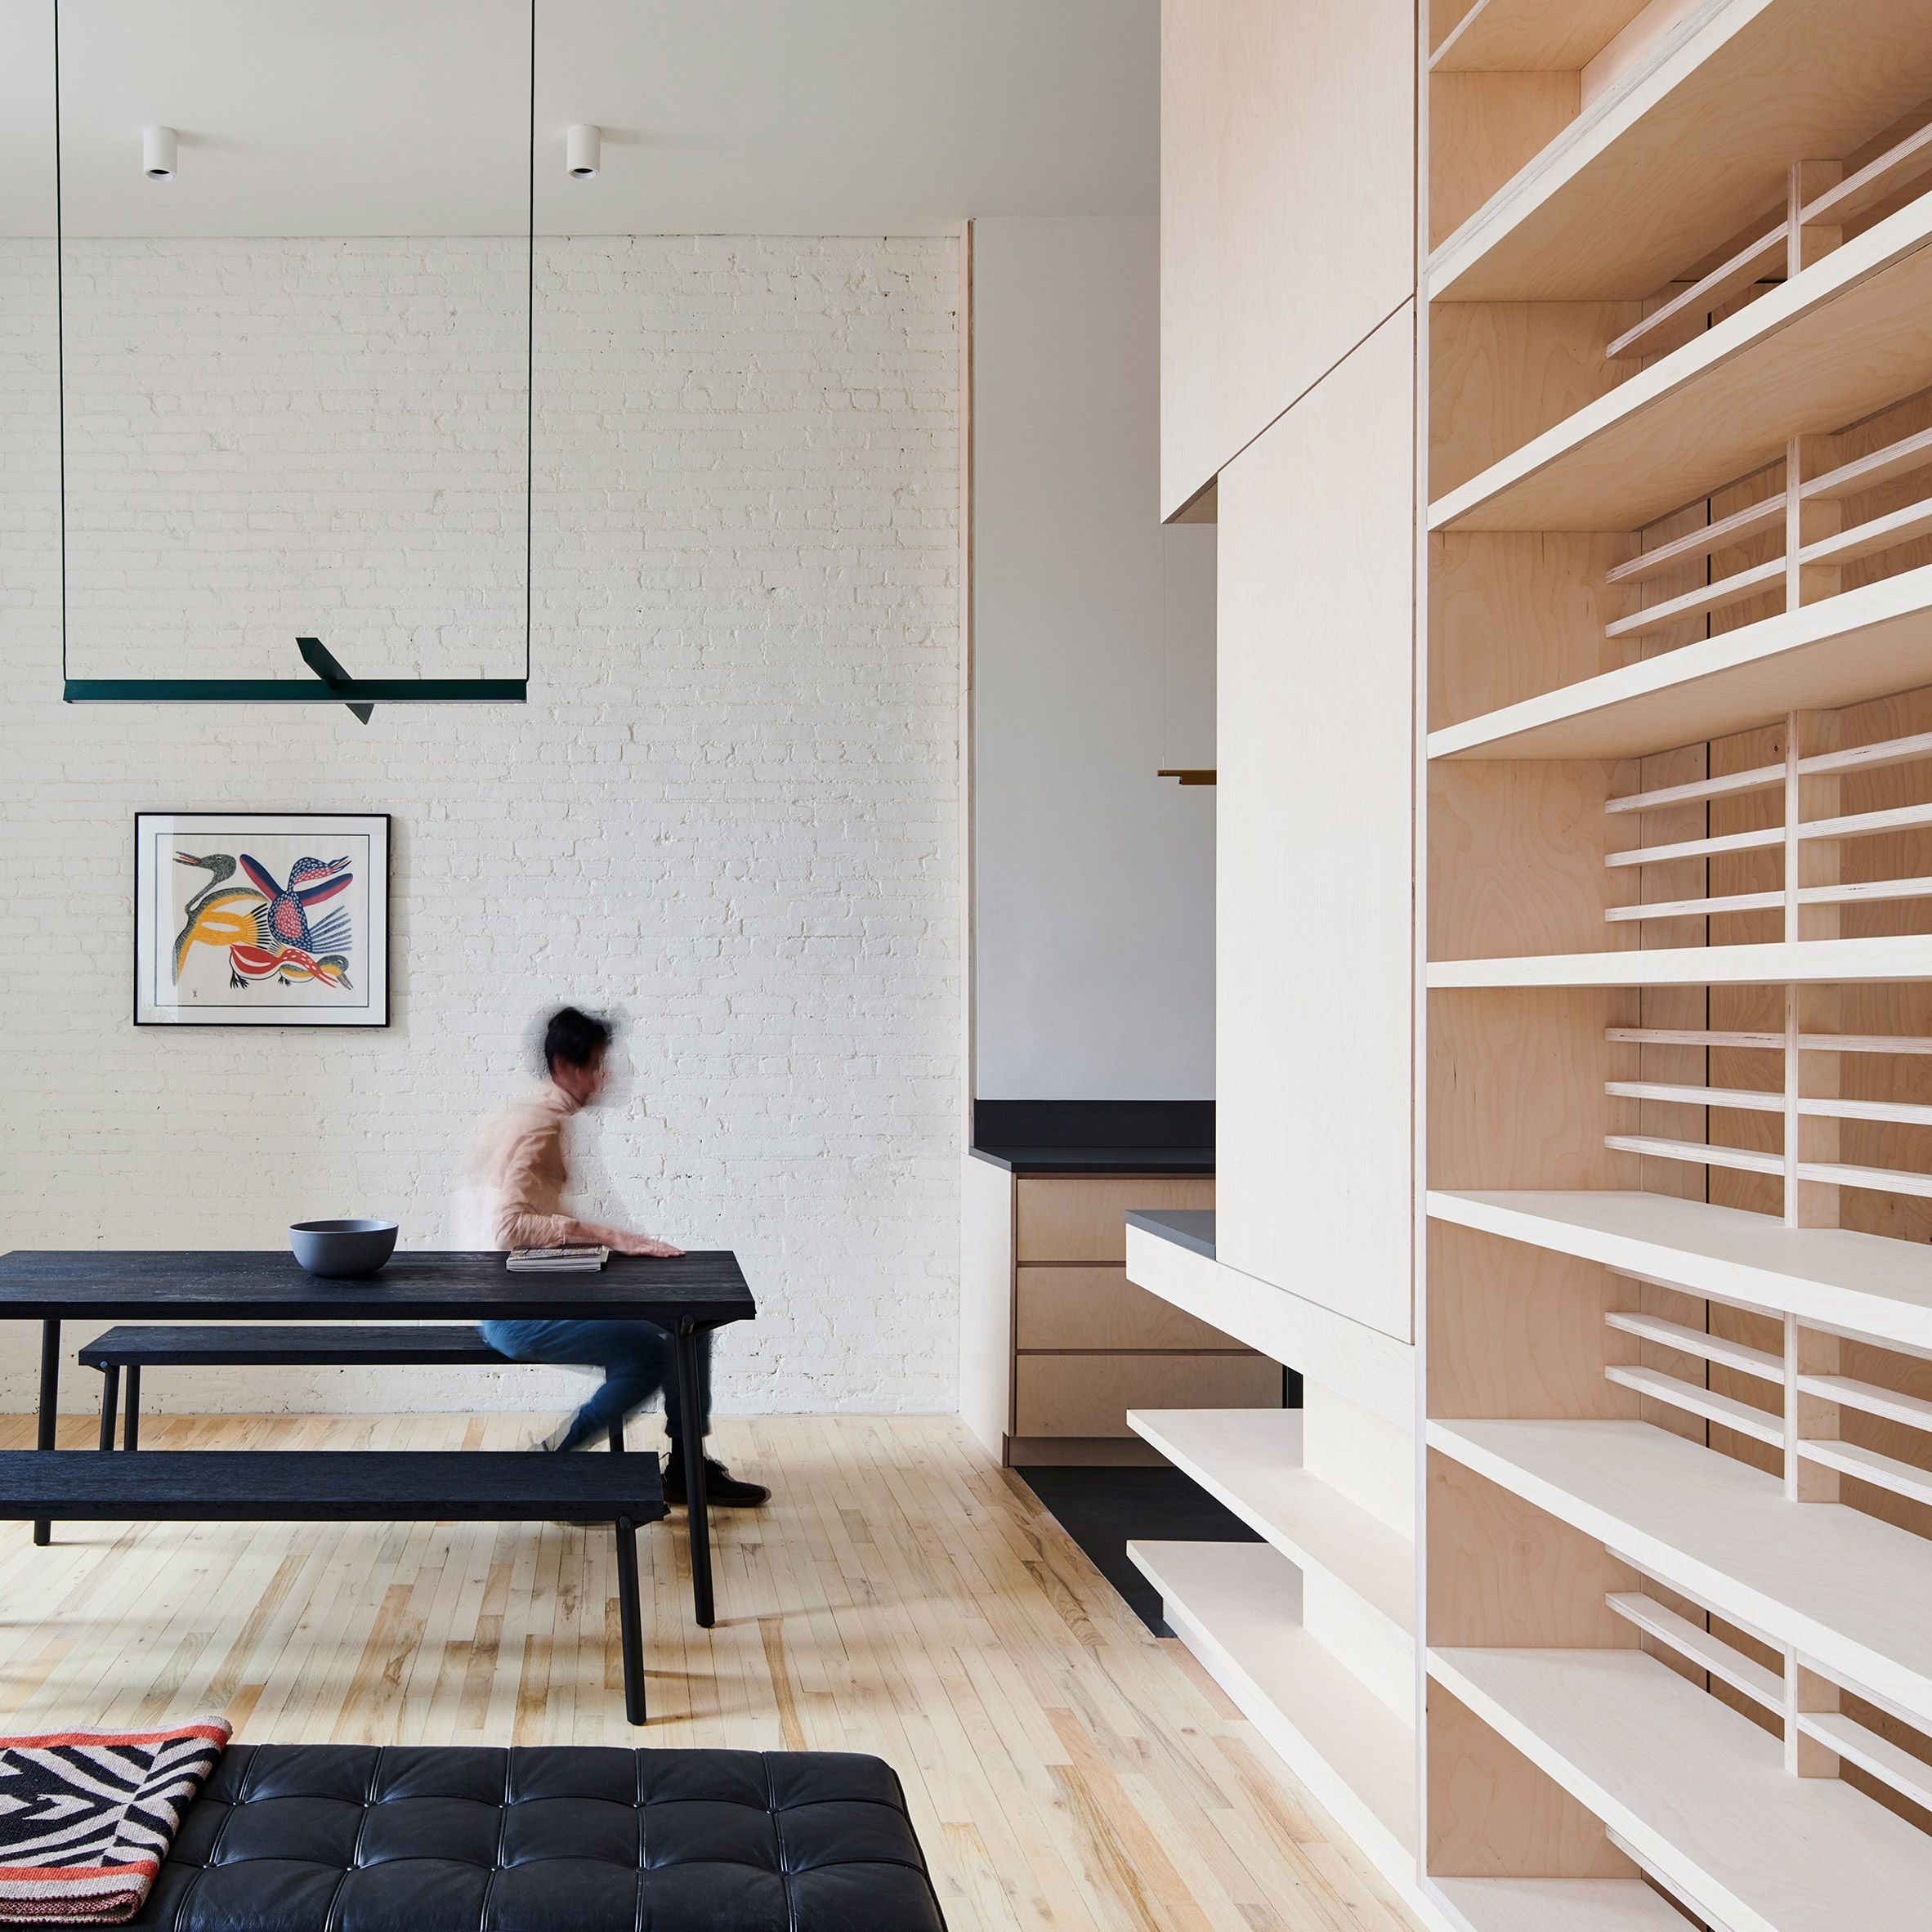 New York Studio Apartments: New York Studio Light And Air Architecture Has Retrofitted